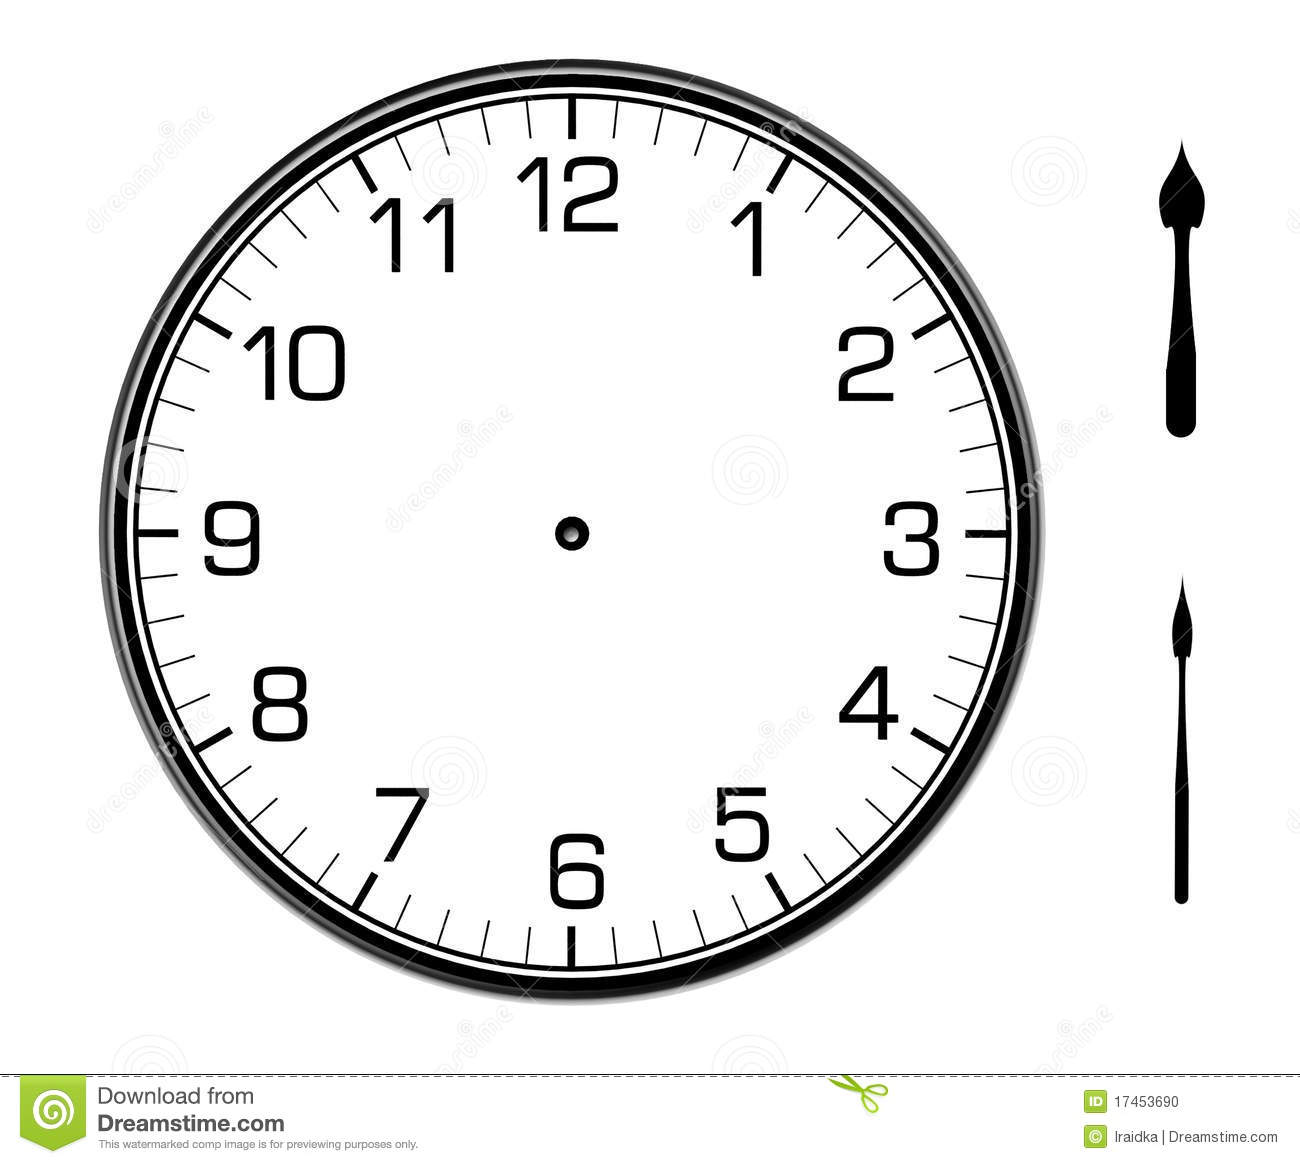 classic wall clock on the wall stock illustration With wiringpi clock mode